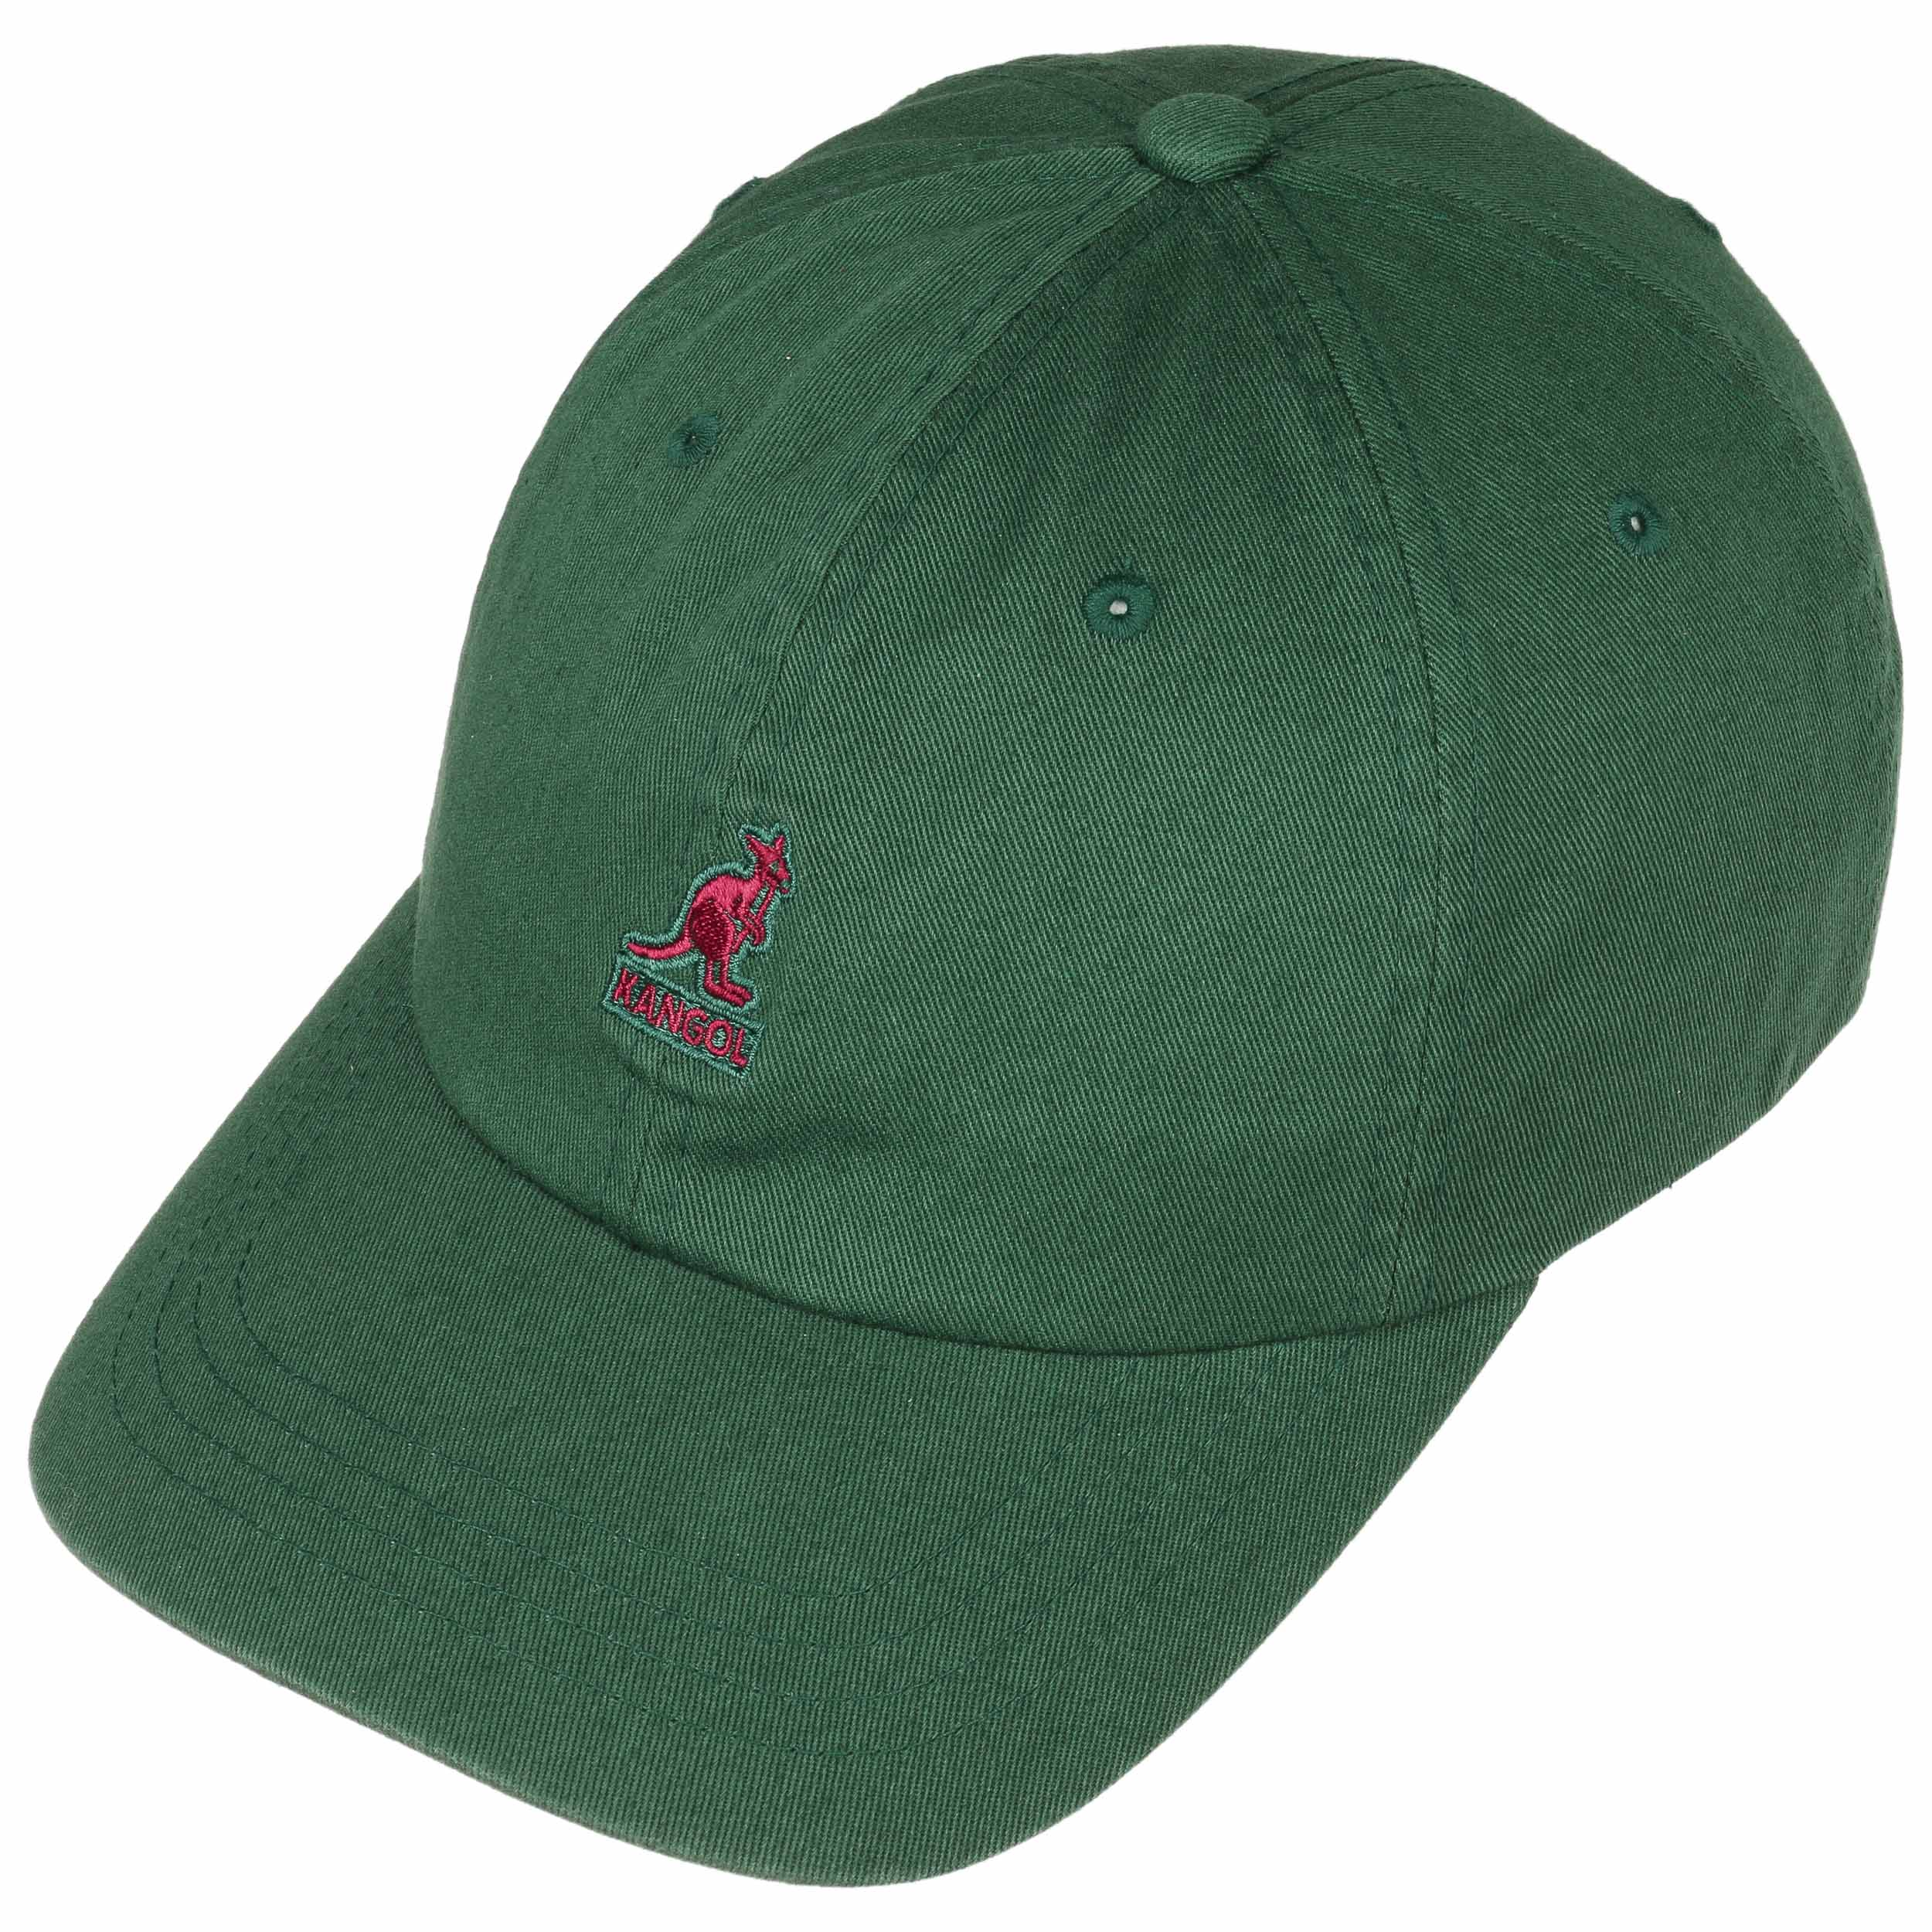 6f96c4b3002 ... Cappellino Washed Dad Hat by Kangol - verde 1 ...